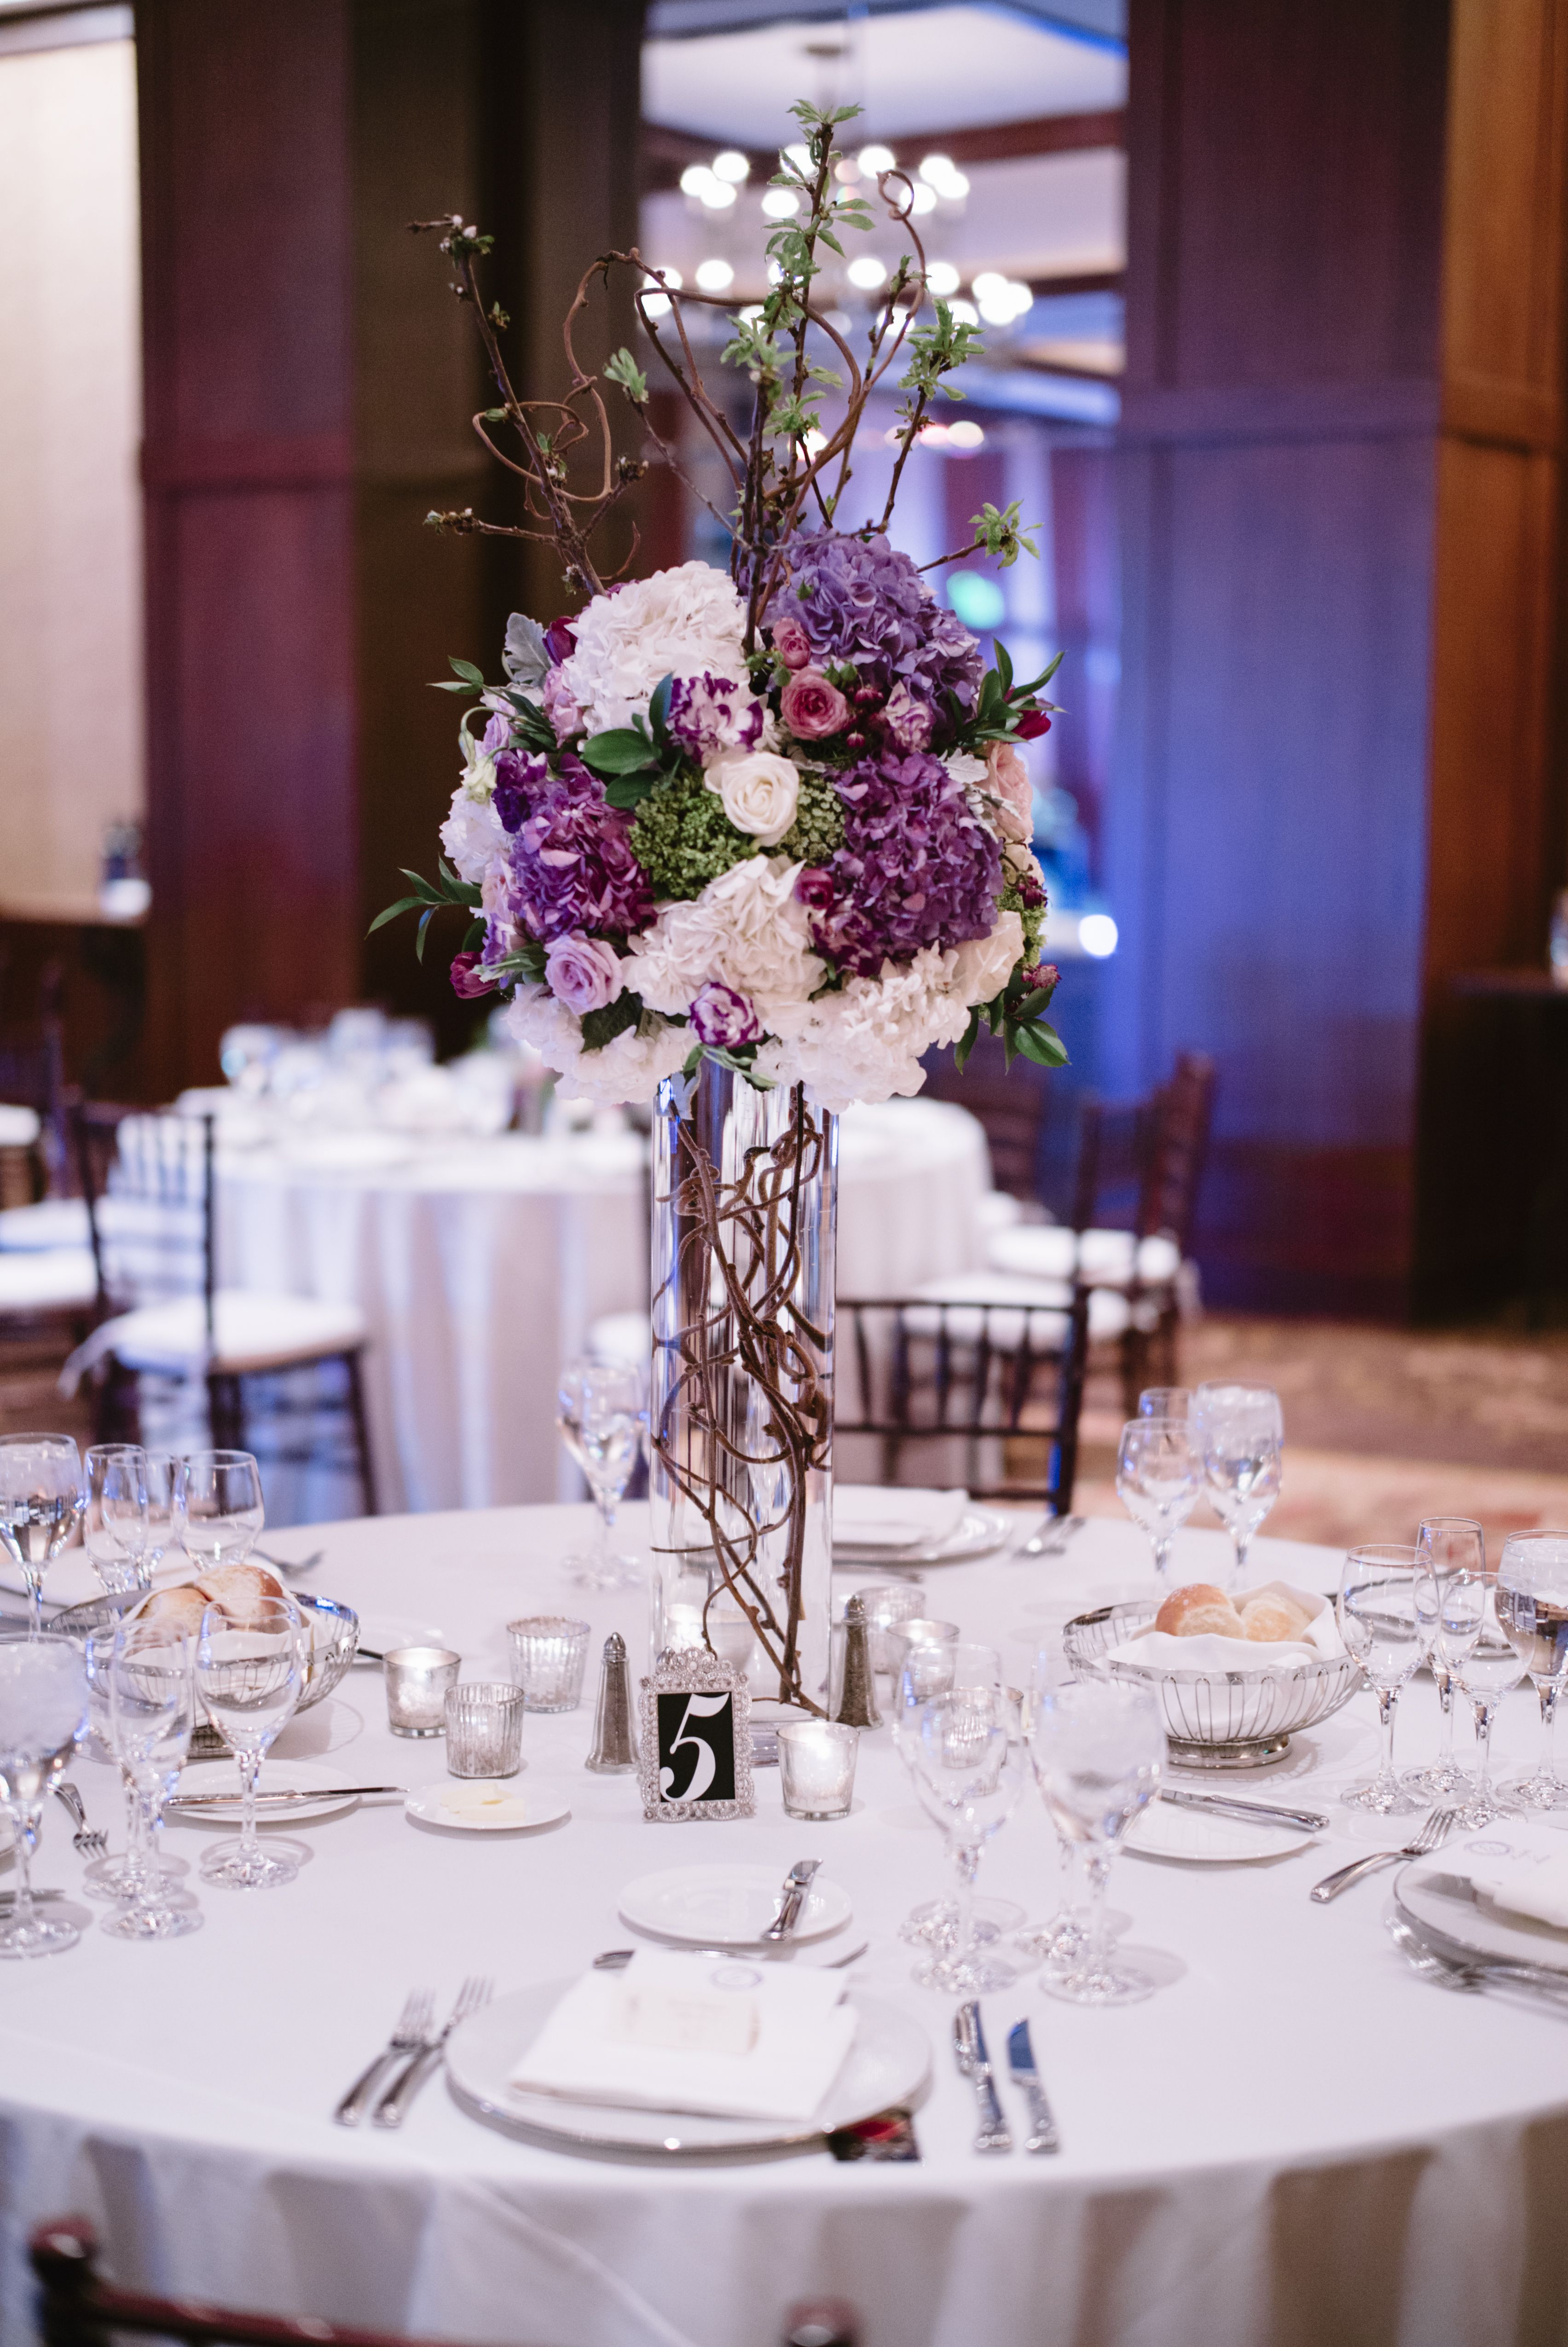 A tall floral centerpiece designed with purple hydrangea